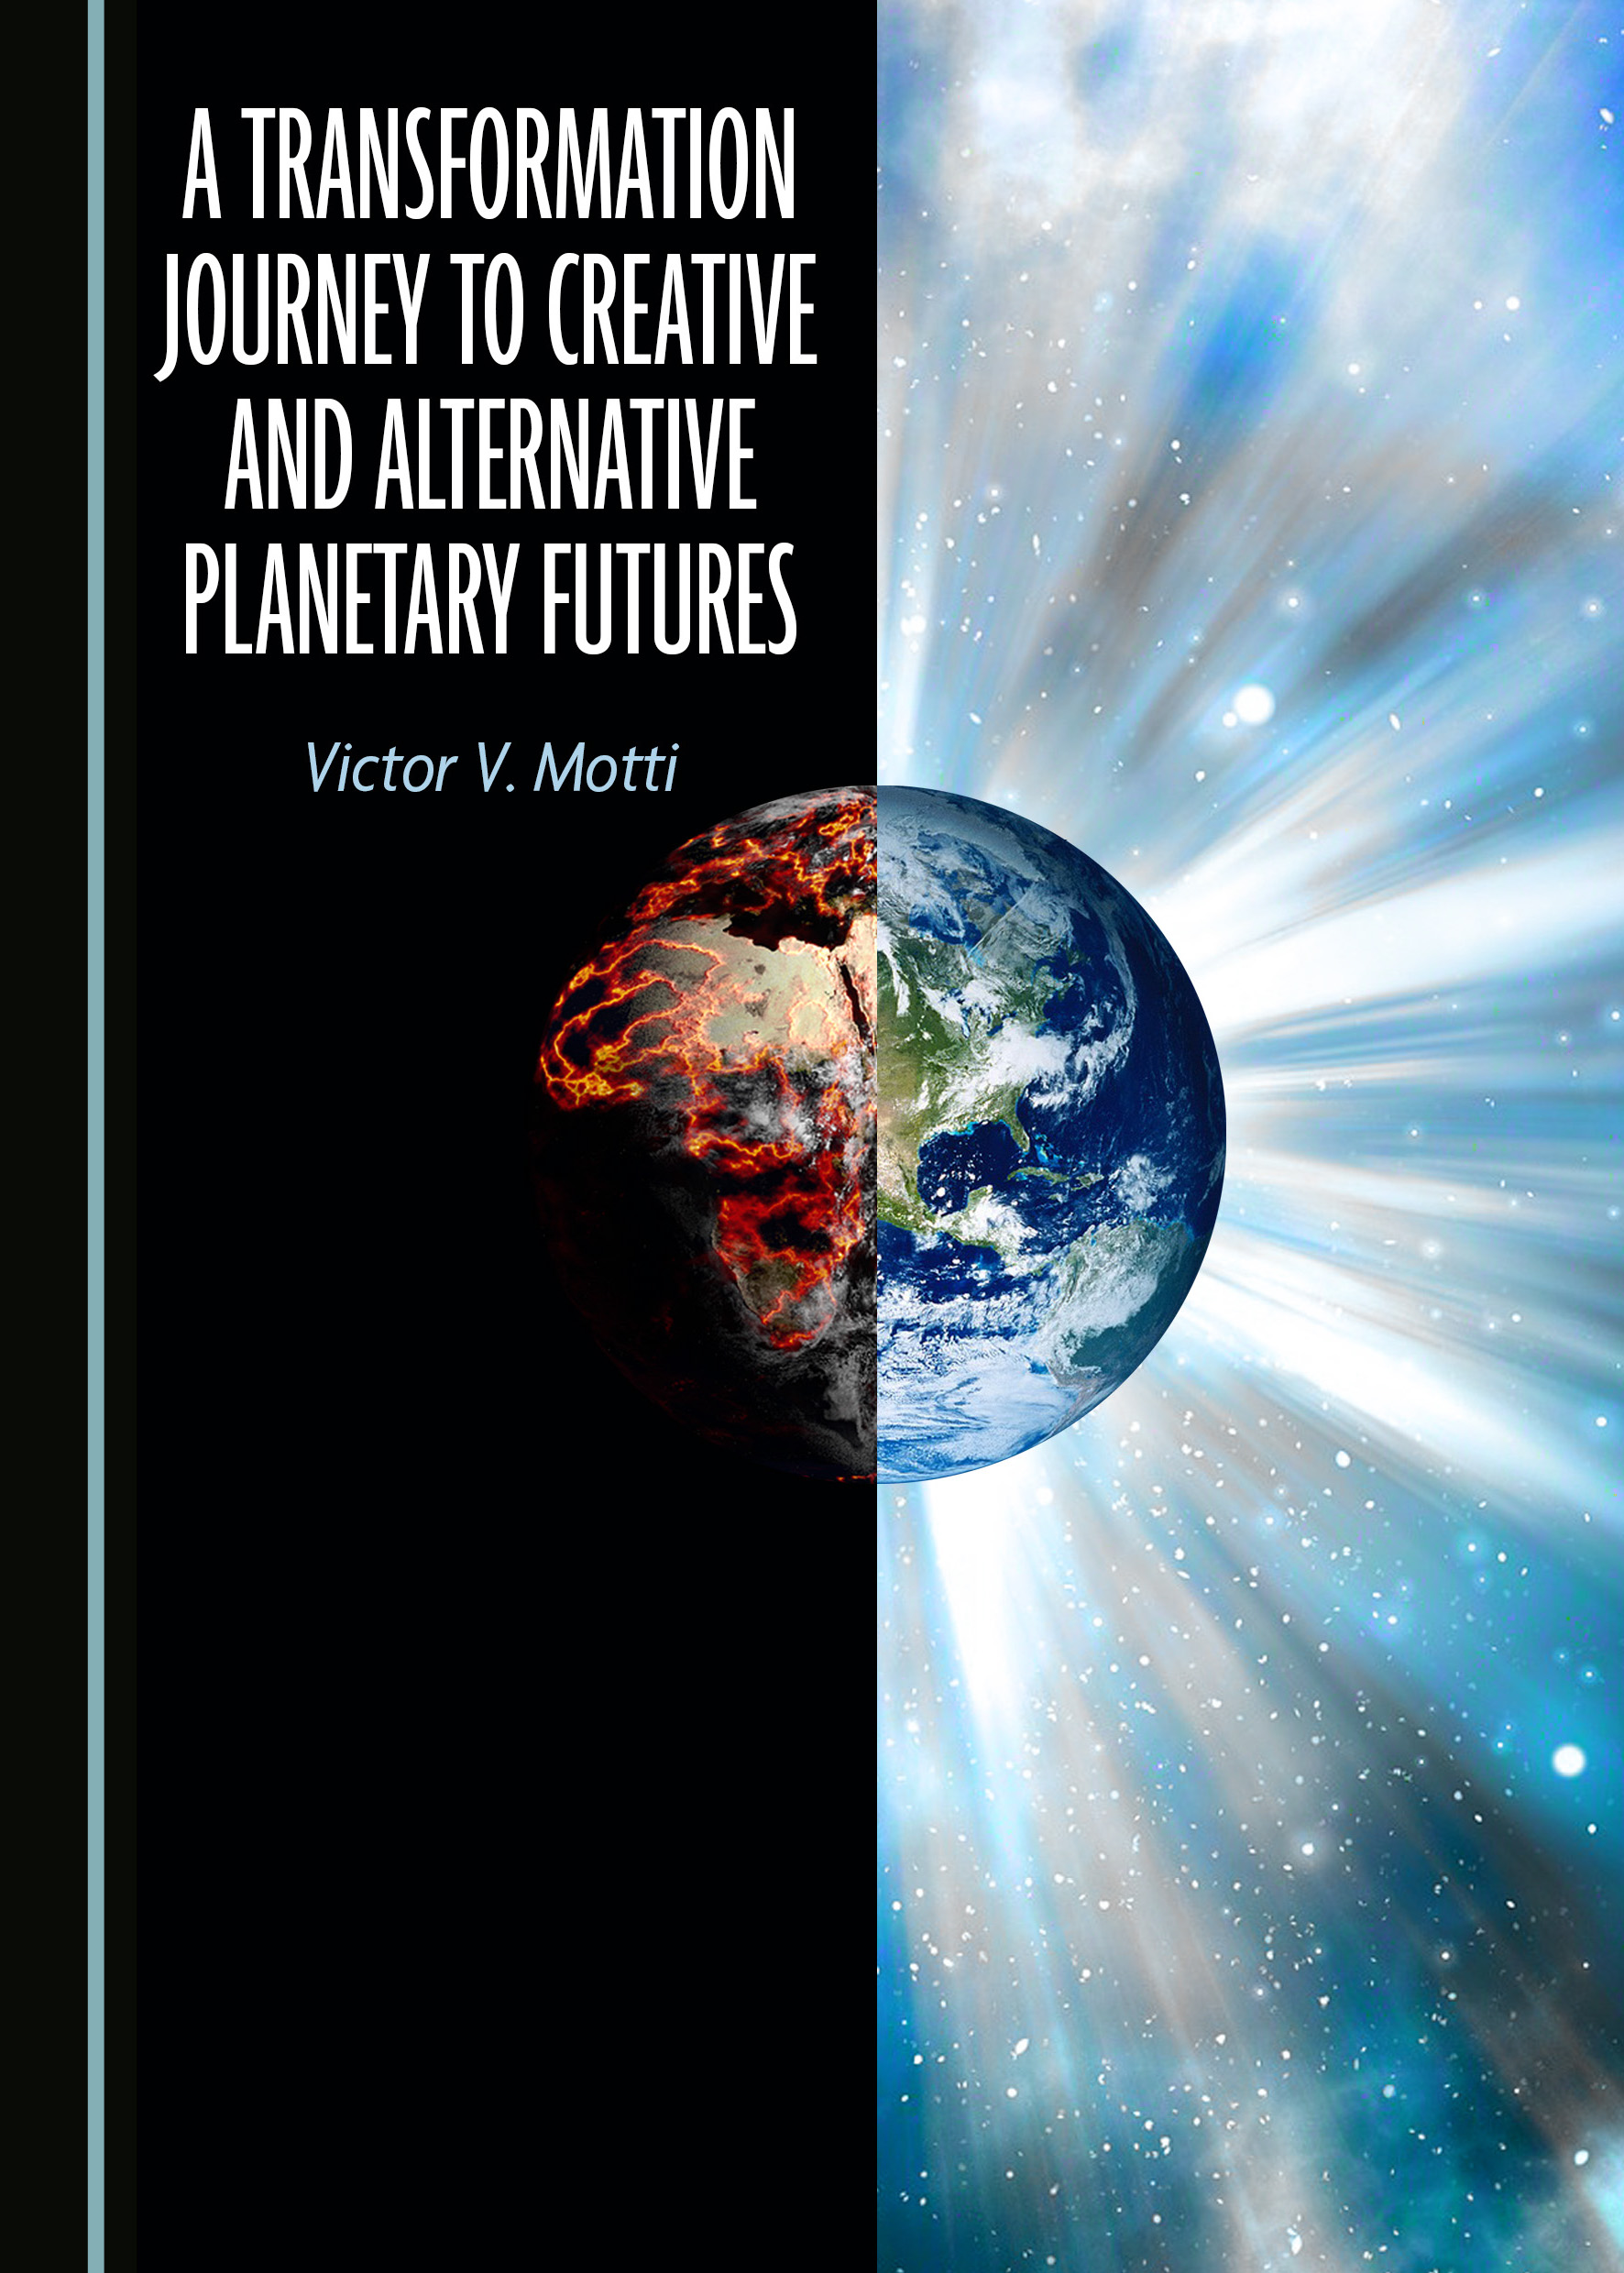 A Transformation Journey to Creative and Alternative Planetary Futures